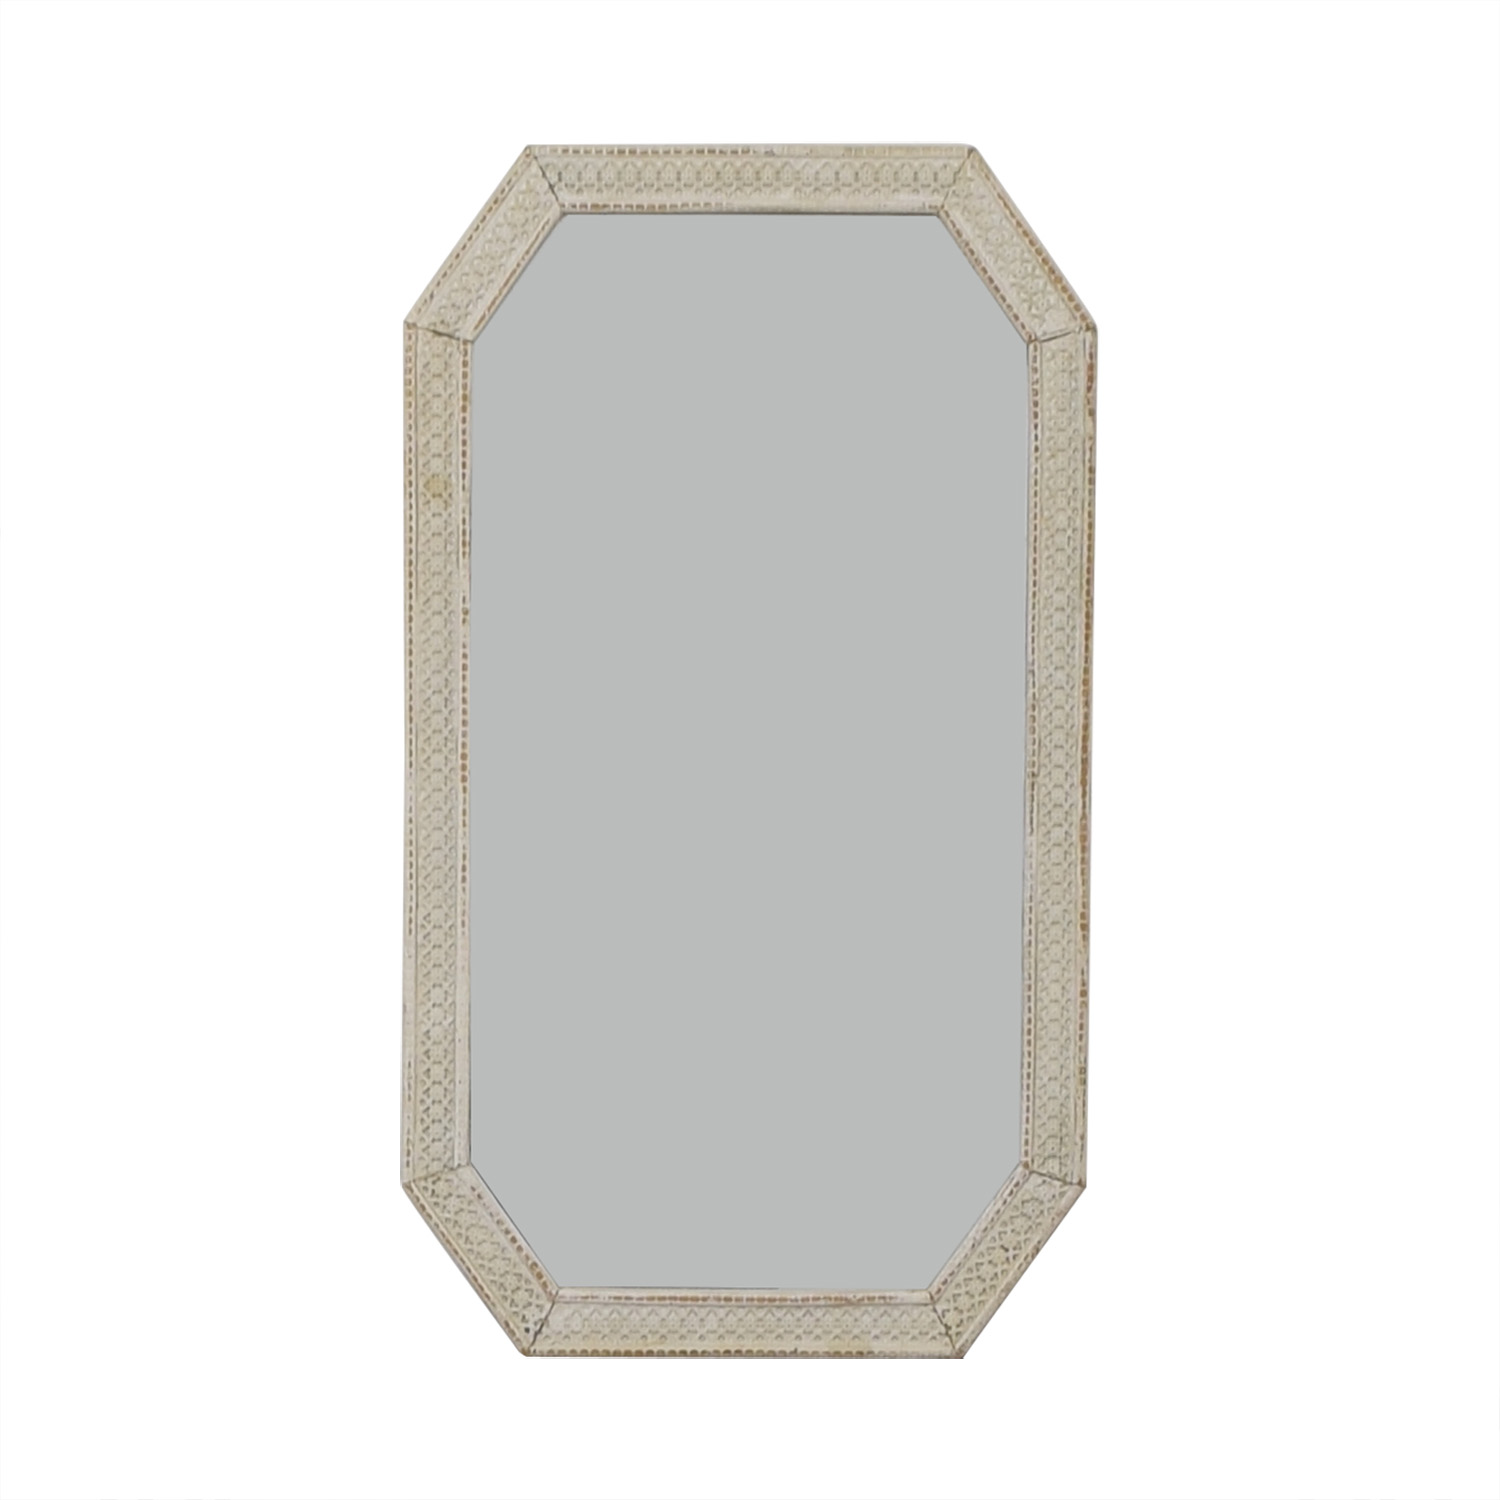 Distressed White Indian Lattice Wall Mirror on sale